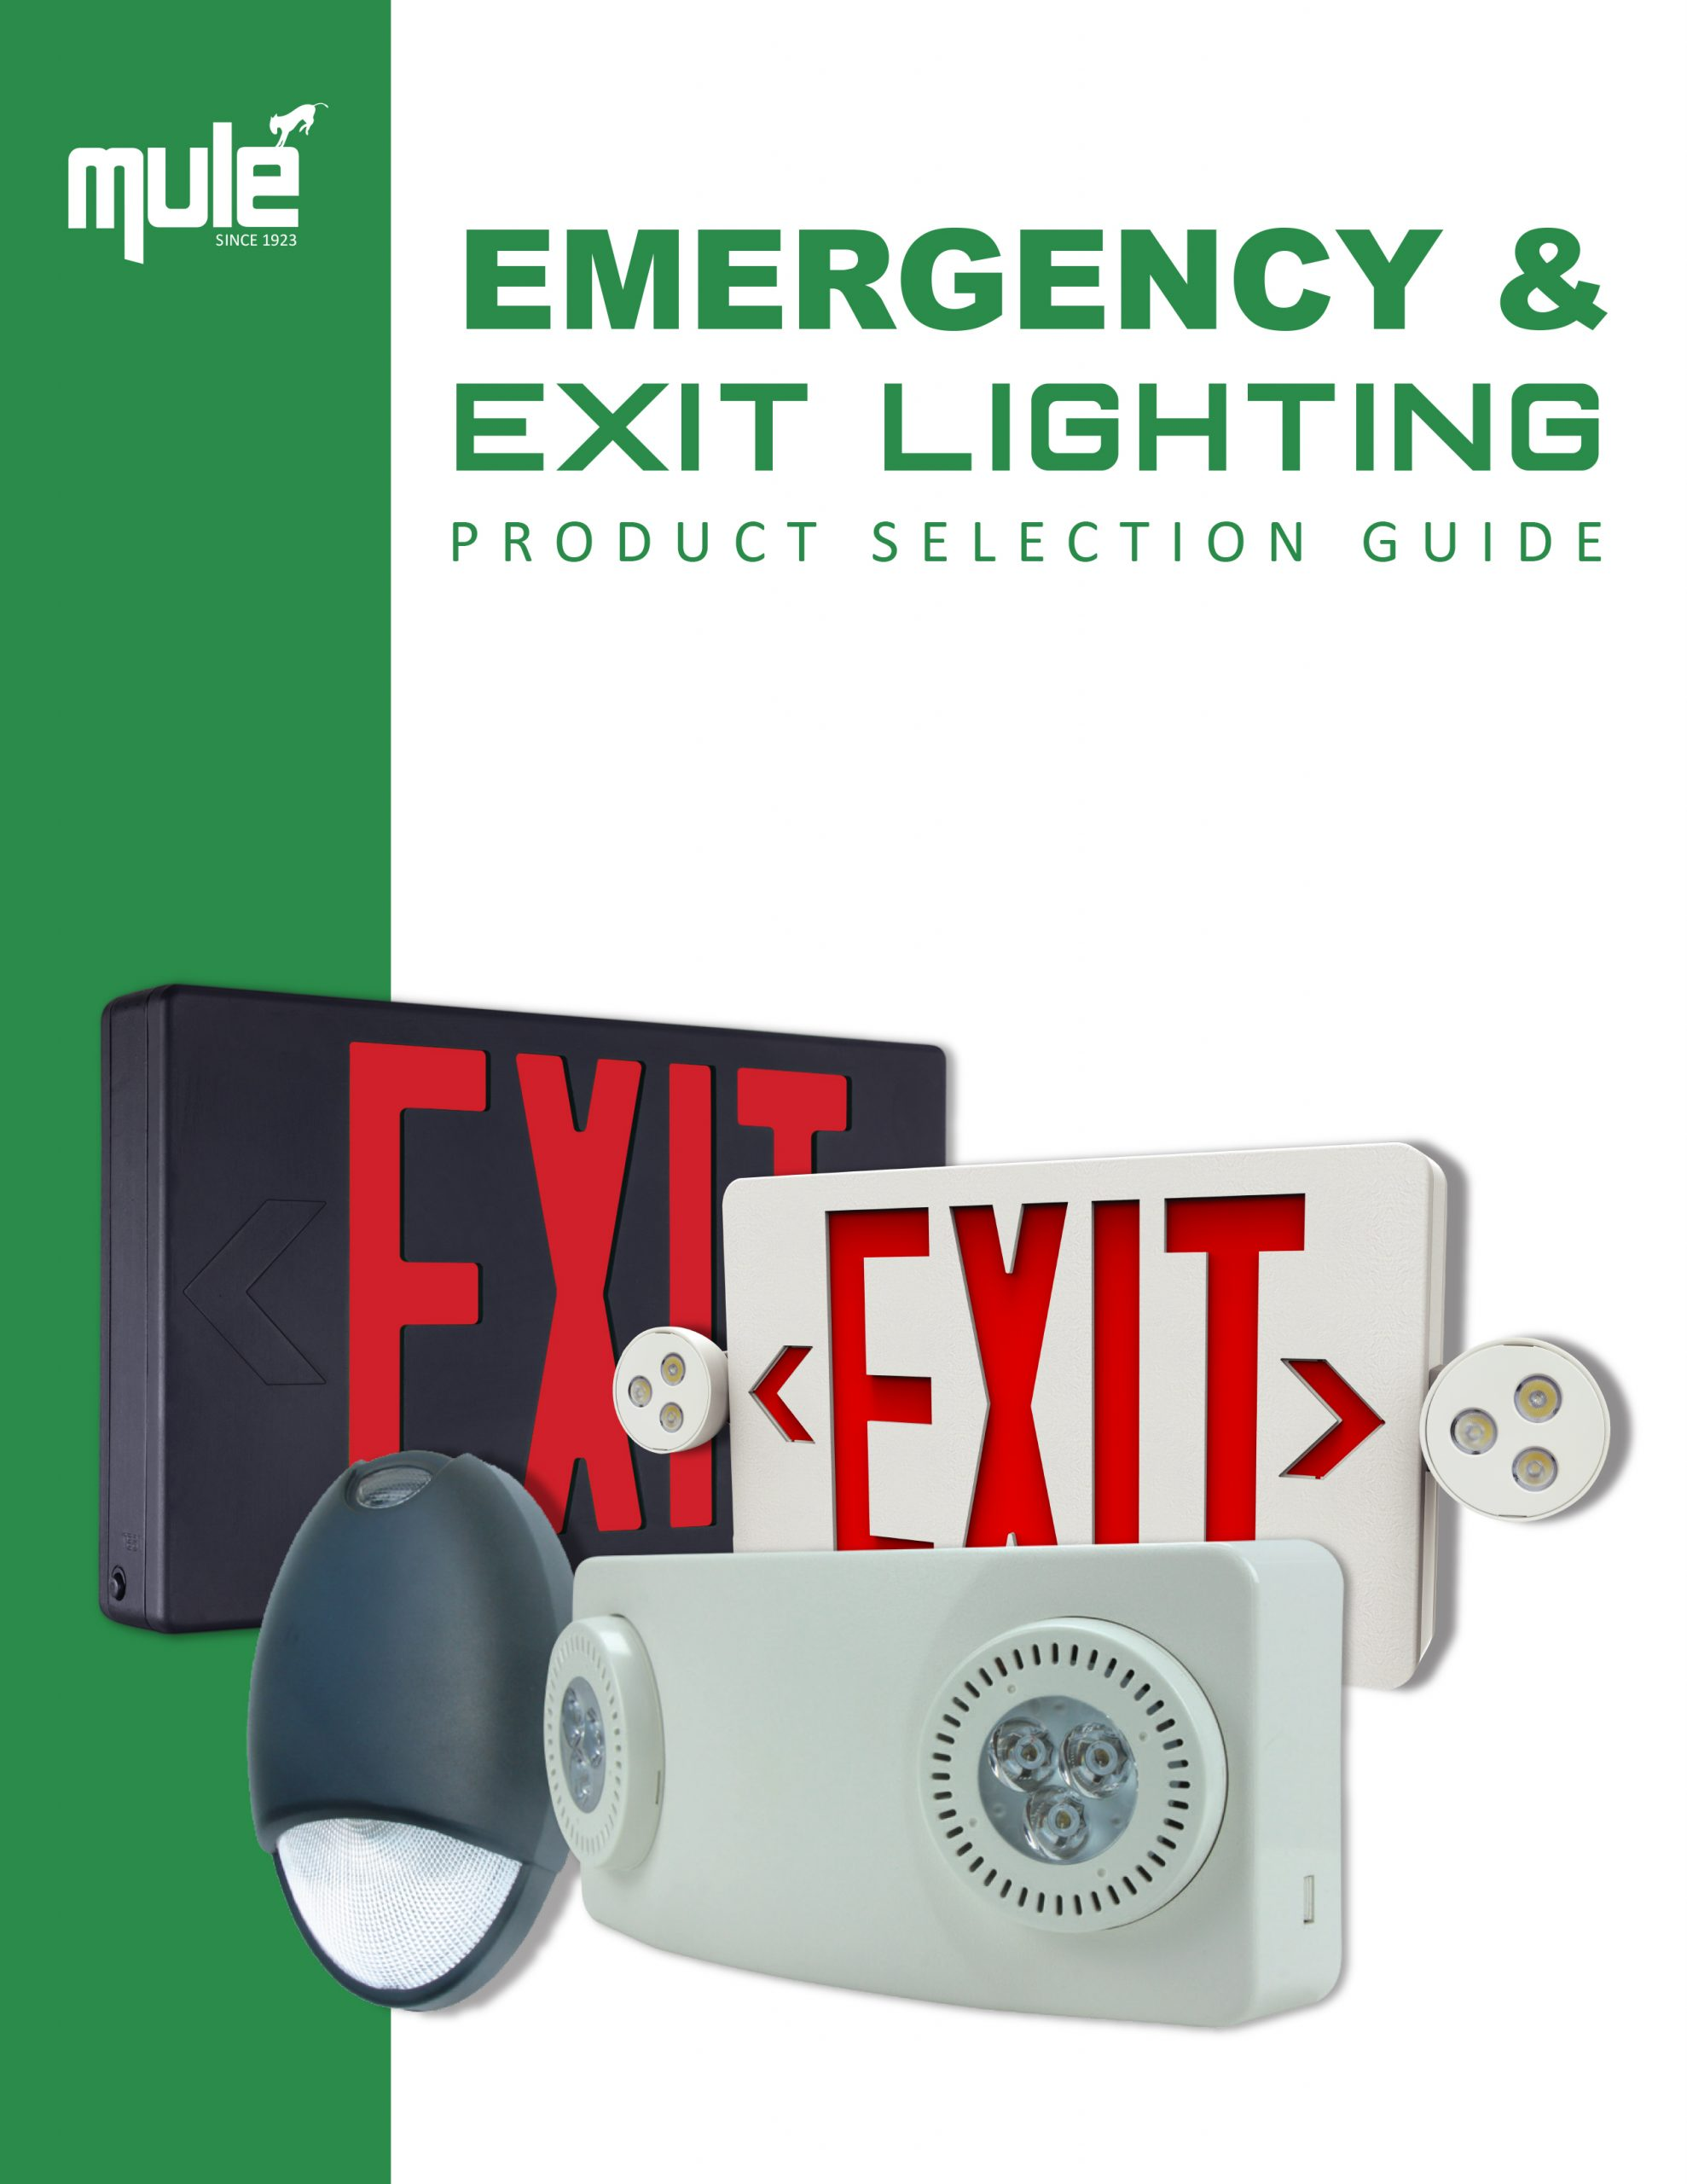 Mule Lighting Product Selection Guide E-Catalog Literature